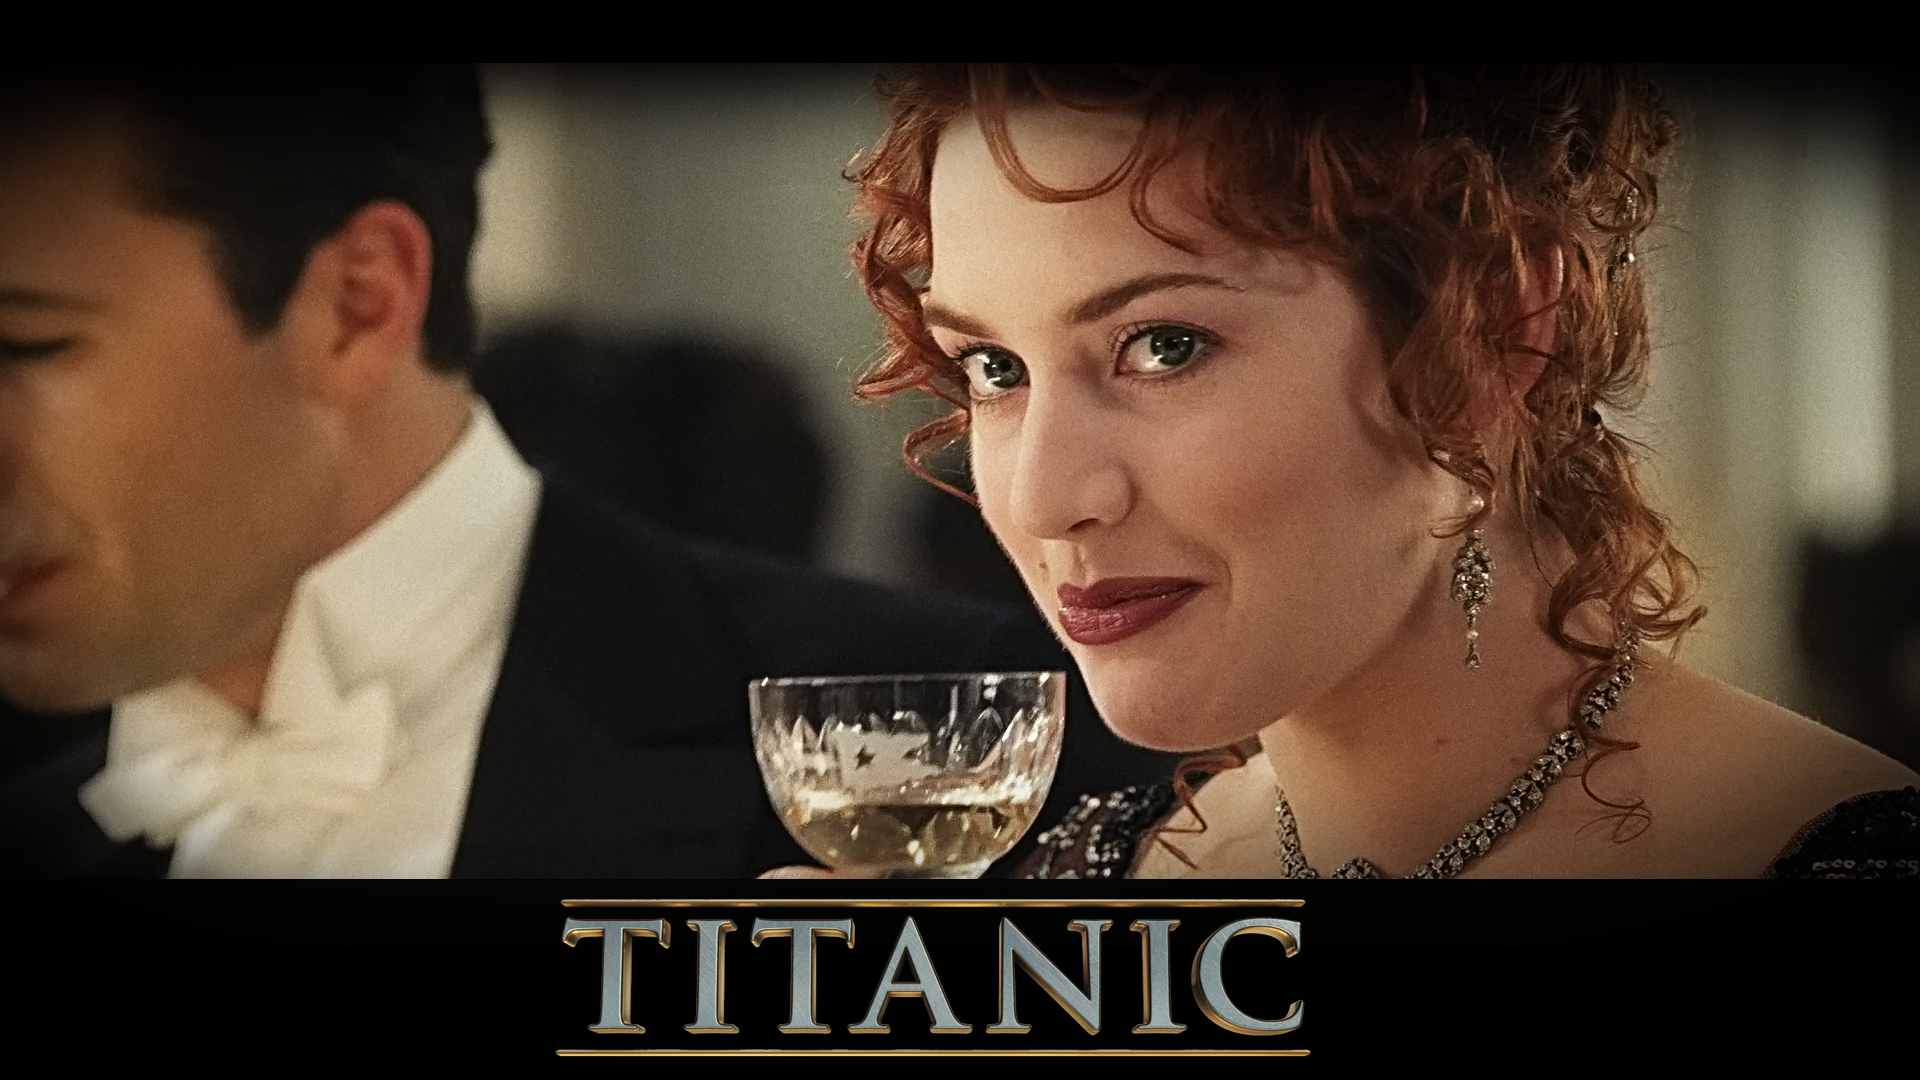 kate winslet wallpapers titanic - wallpapersafari